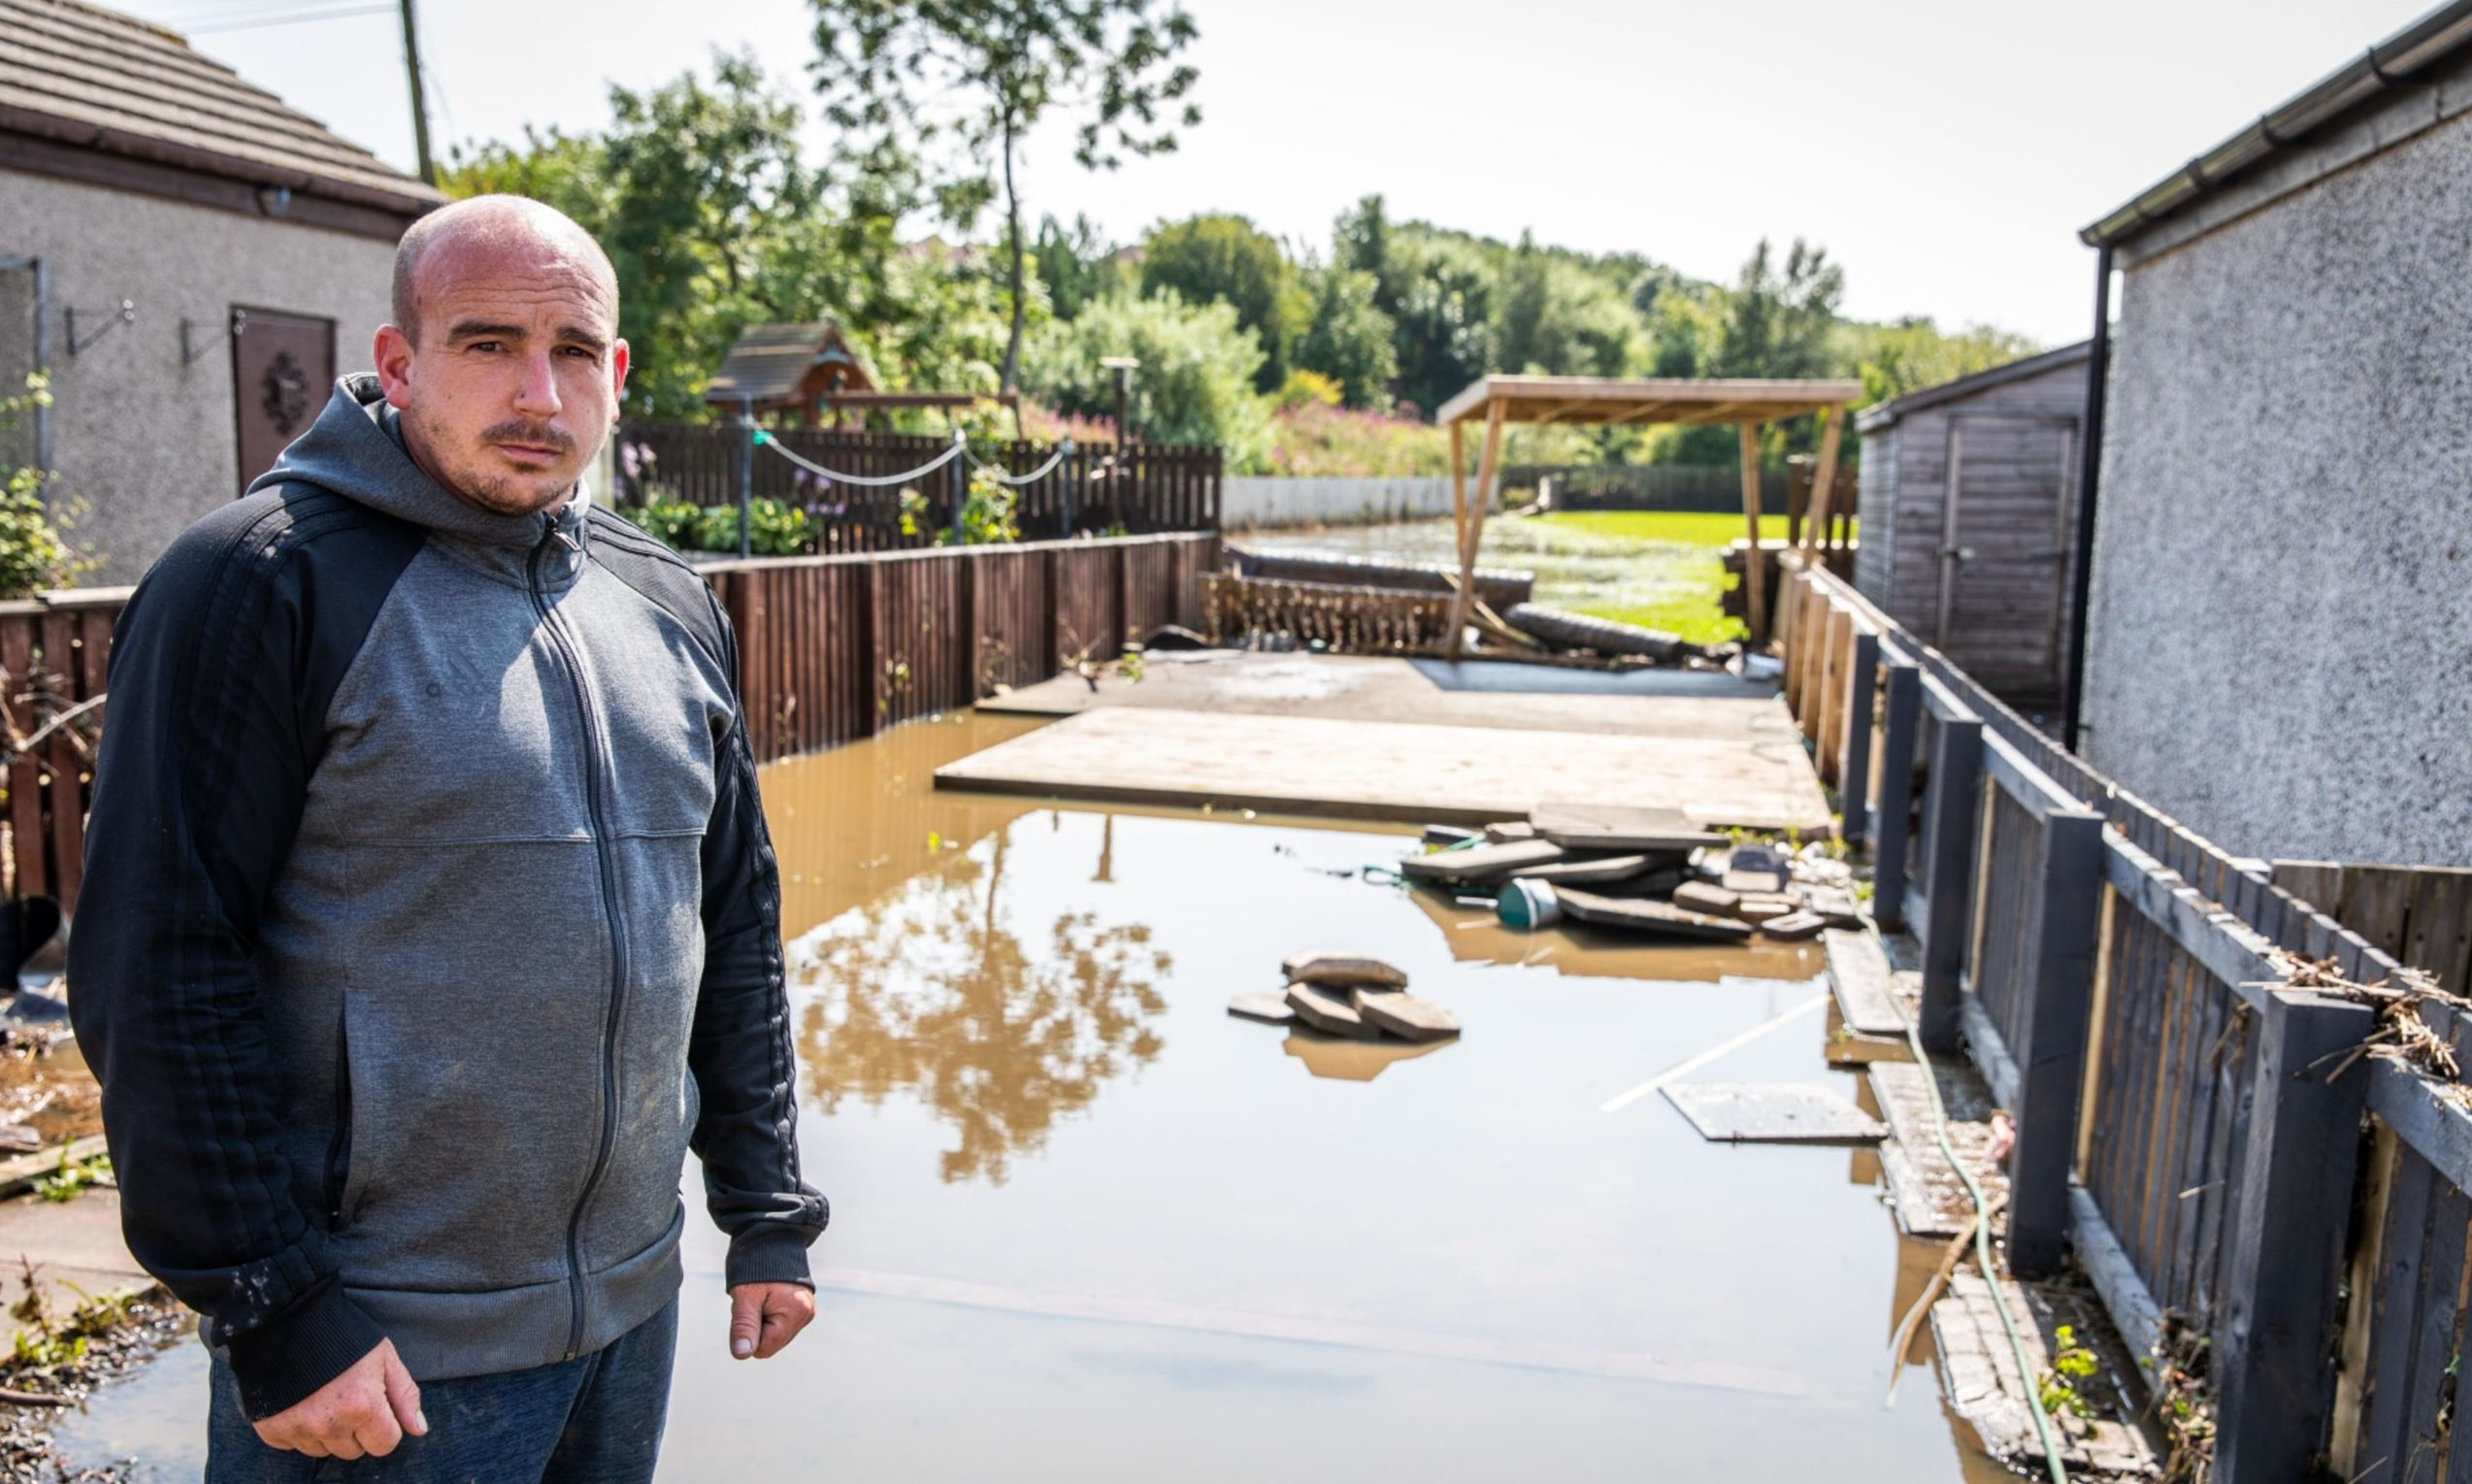 Cardenden resident Chris King surveys the damage caused by the flood water to his property in August.